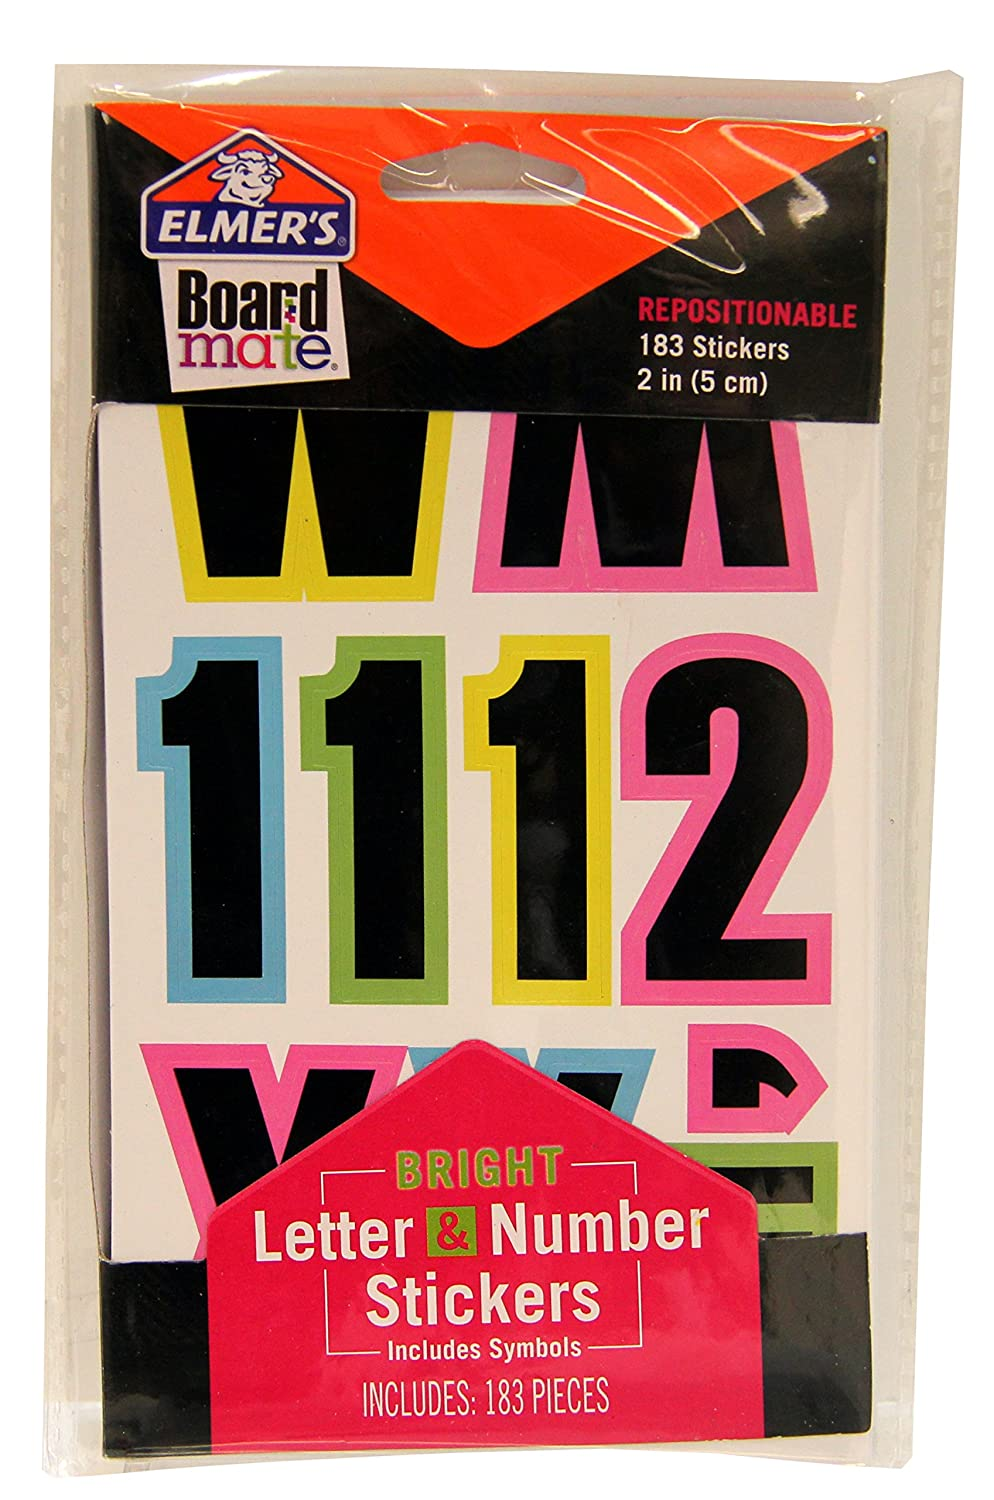 E3072M Black ELMERS Board Mate Repositionable Vinyl Sticky Letters /& Numbers